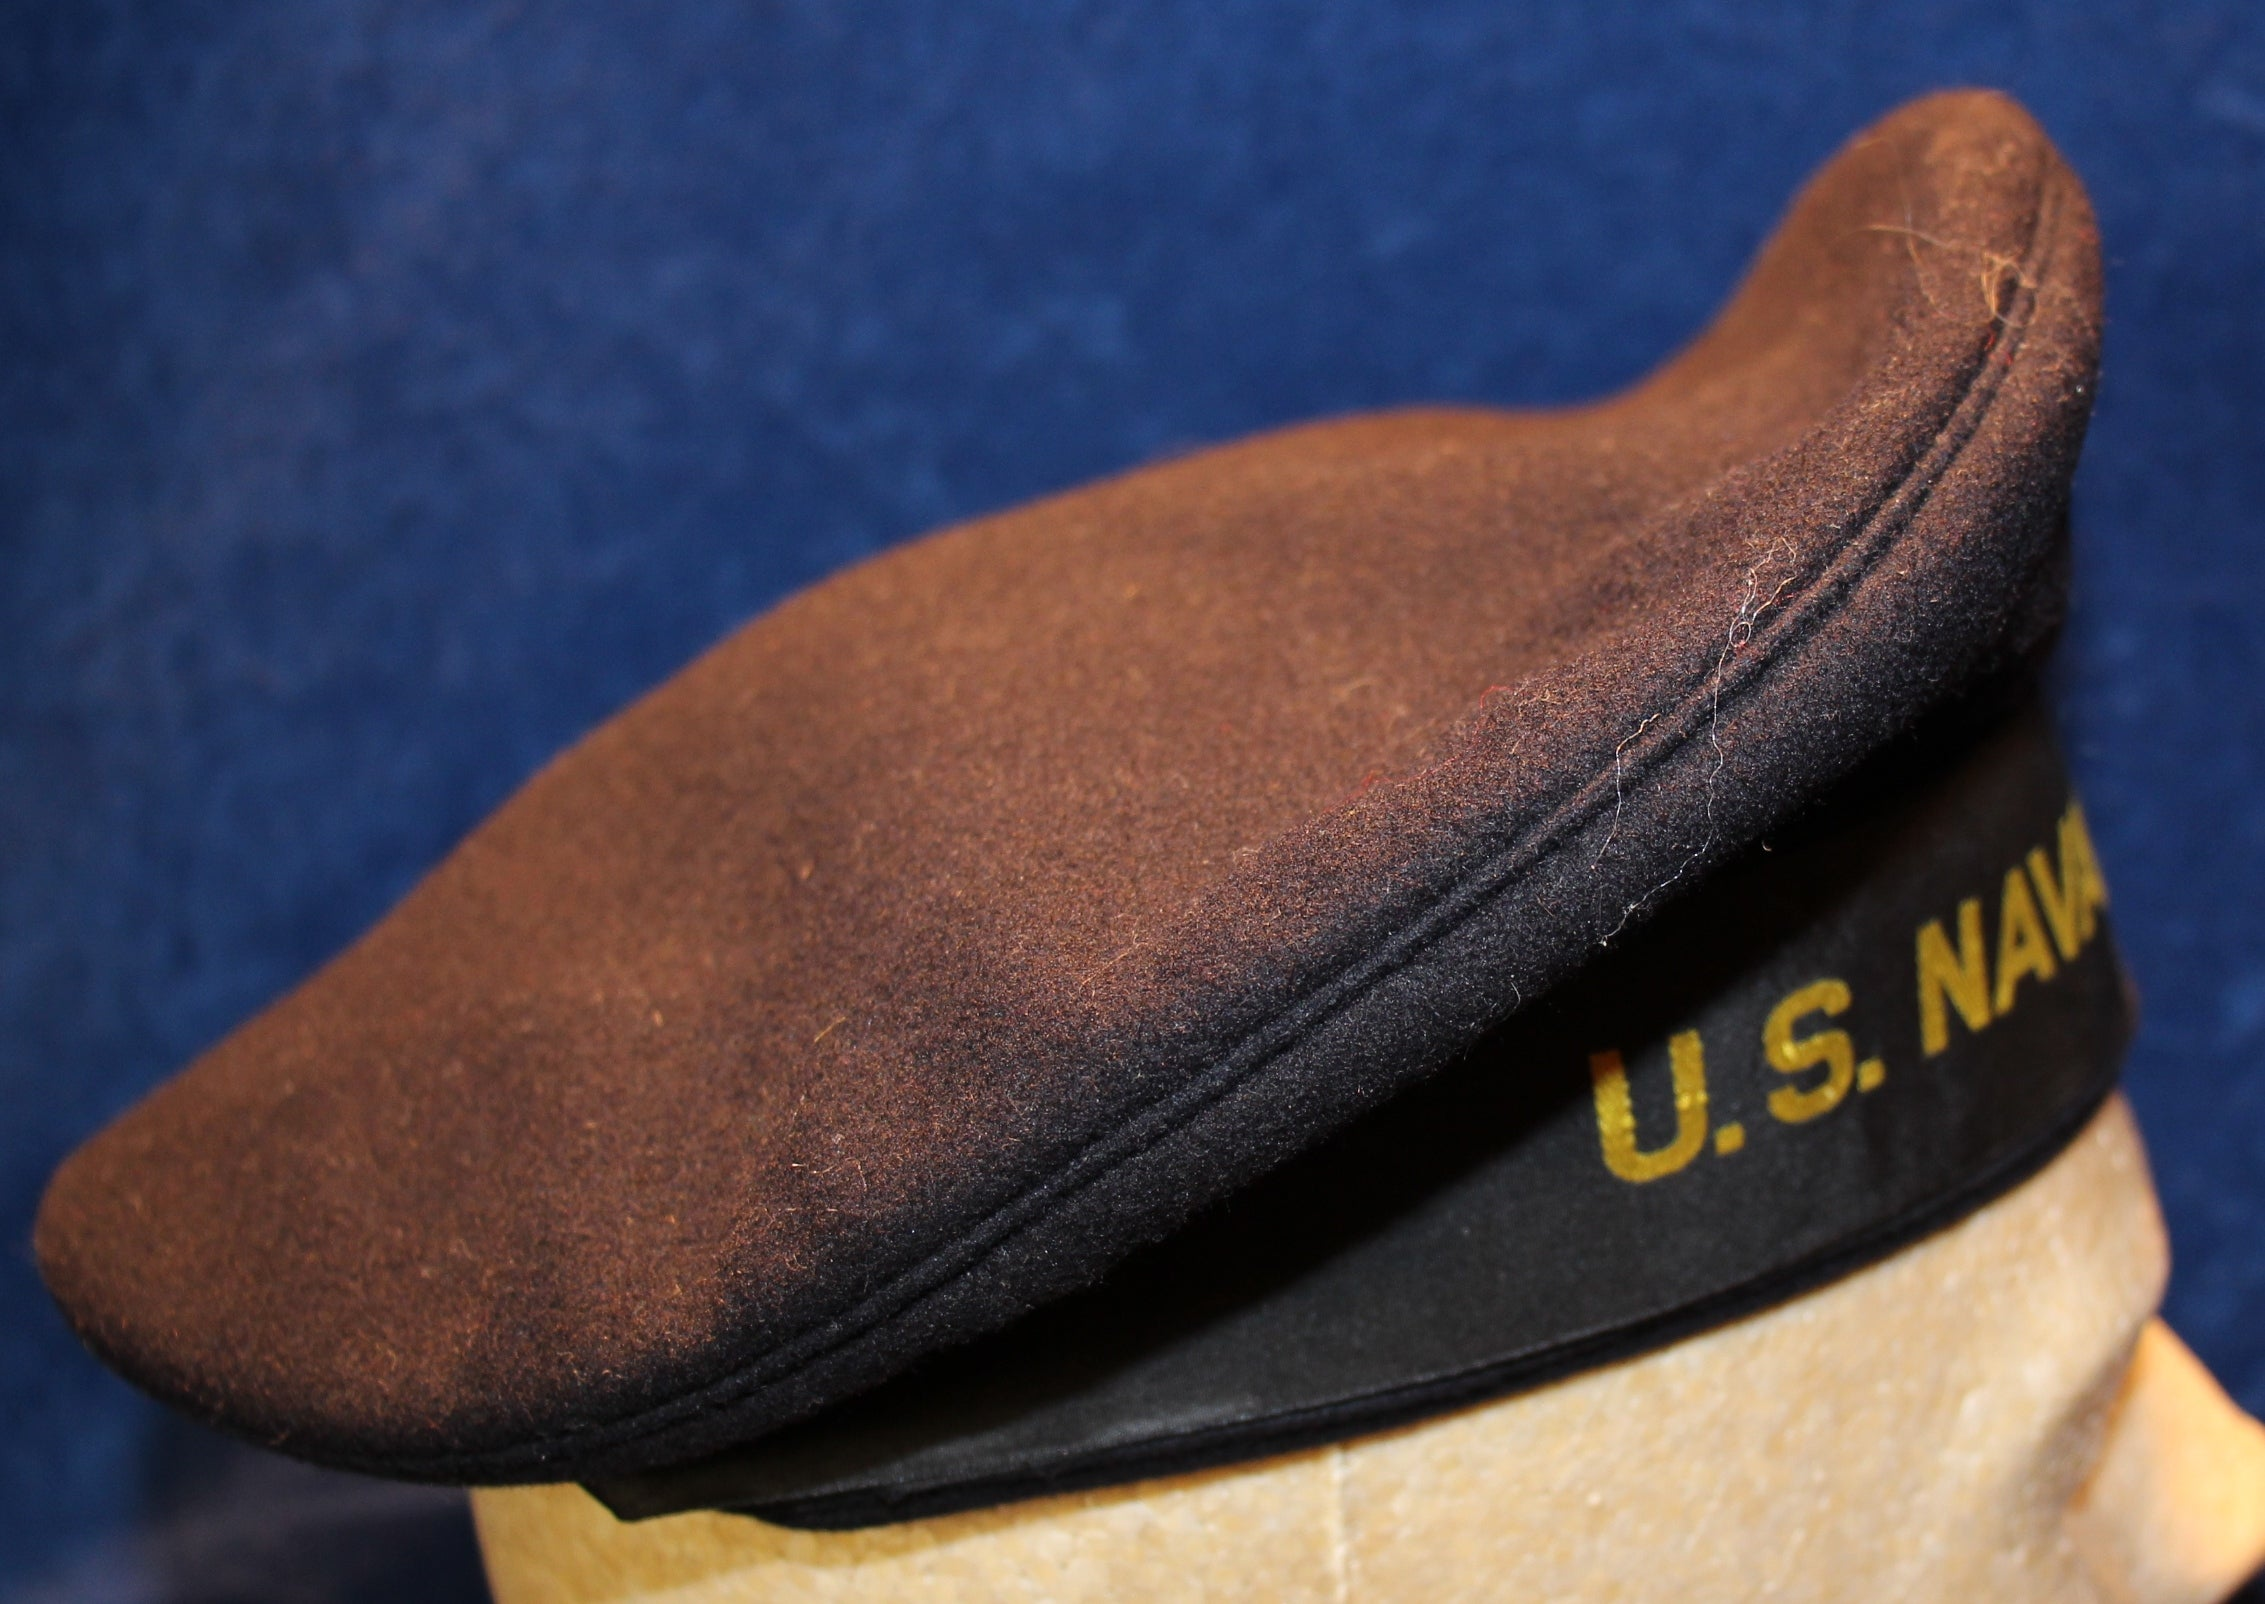 69eff82c87c VINTAGE WWII US NAVY EMBROIDERED US NAVAL AIR STATION DONALD DUCK CAP NO  HOLES